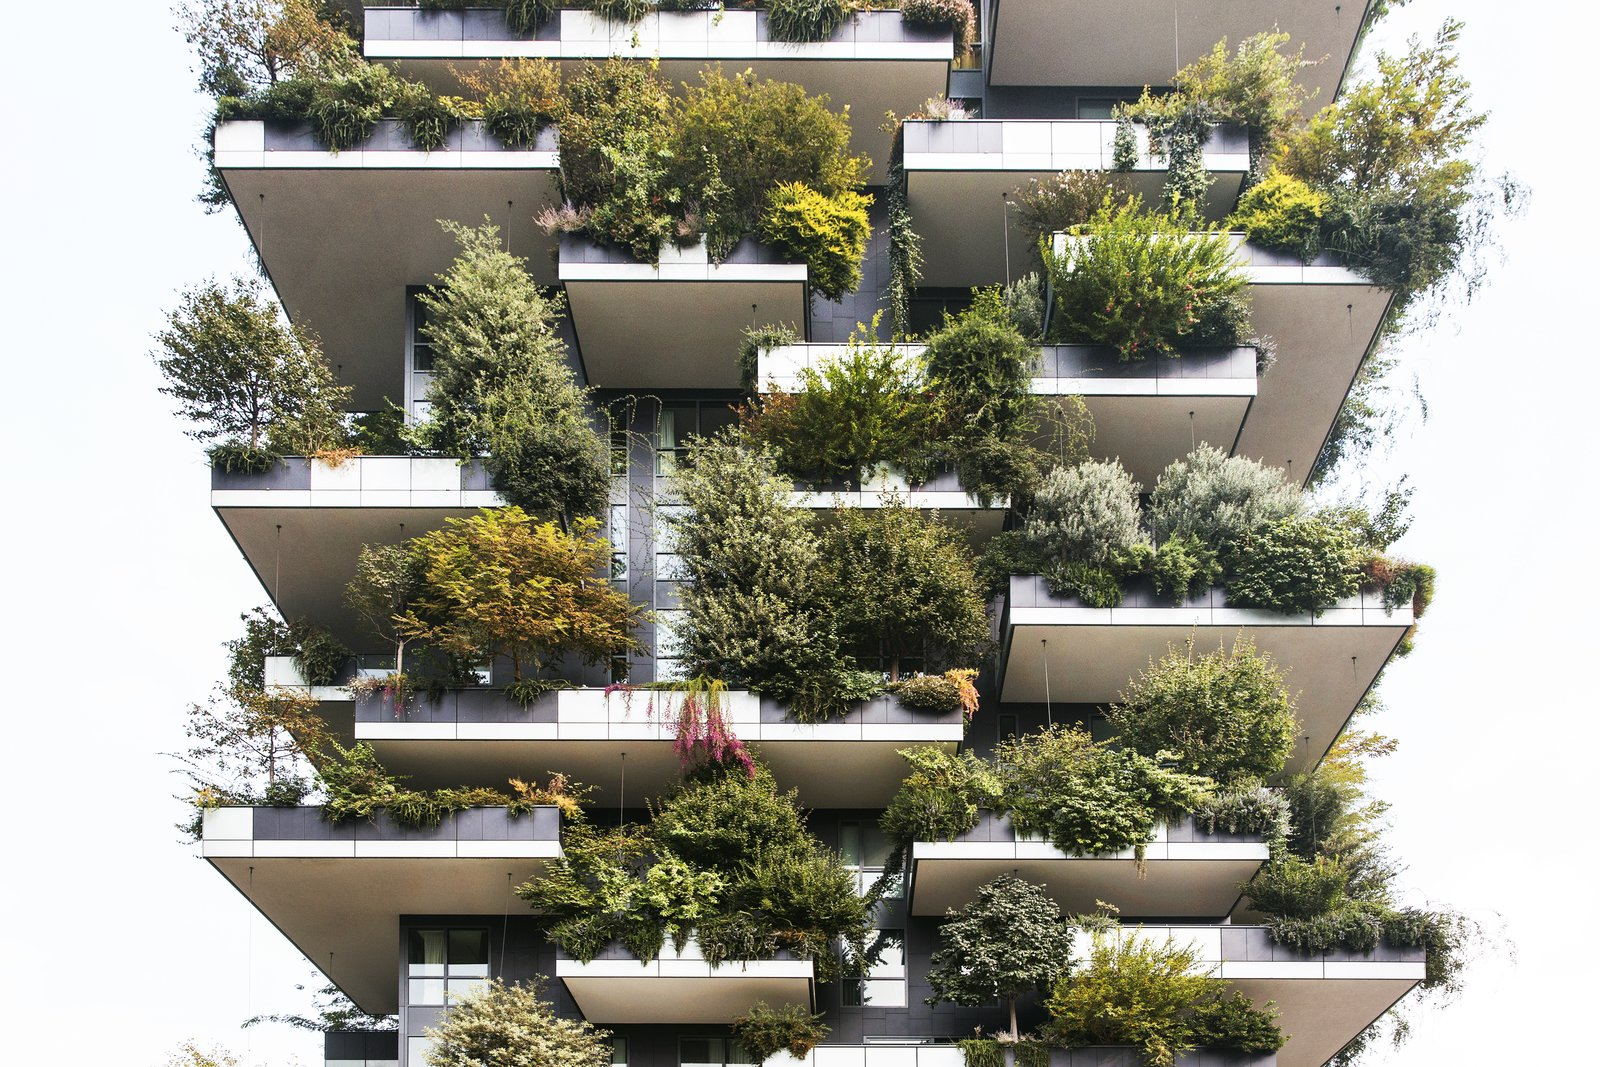 Bosco Verticale, or Vertical Forest, houses 800 trees in addition to its human residents. Pronounced balconies make space for large tubs in which the vegetation is planted, and the staggered nature of the balconies allows unhindered growth. The firm undertook a three-year planning process with a team of botanists and ethologists to choose the plant species.